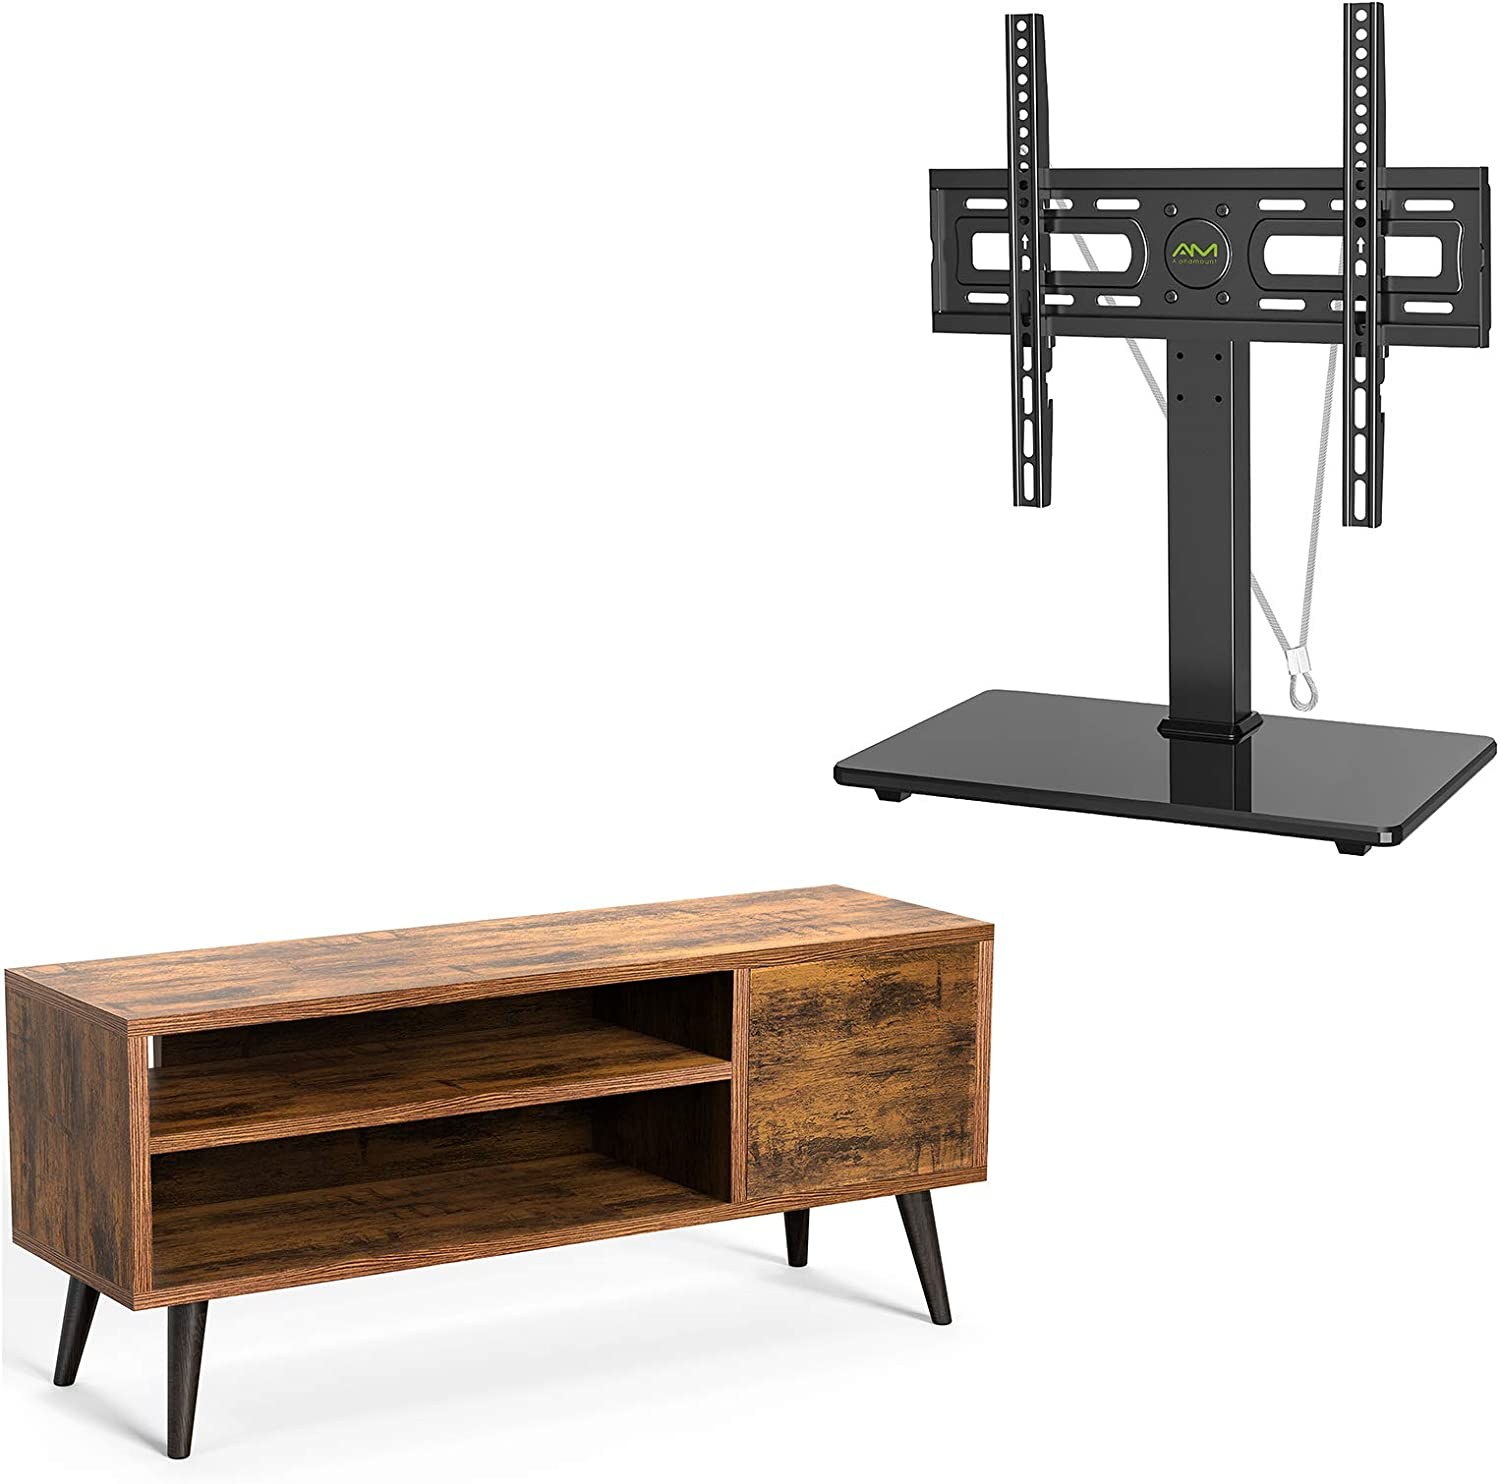 TV Console Table with Storage for TVs up to 55 Inch, Retro TV Stand for Media Cable Box Gaming Consoles APRTS01 & Universal TV Stand Table Top TV Base for 26-55 Inch Max VESA 400x400mm APTVS06